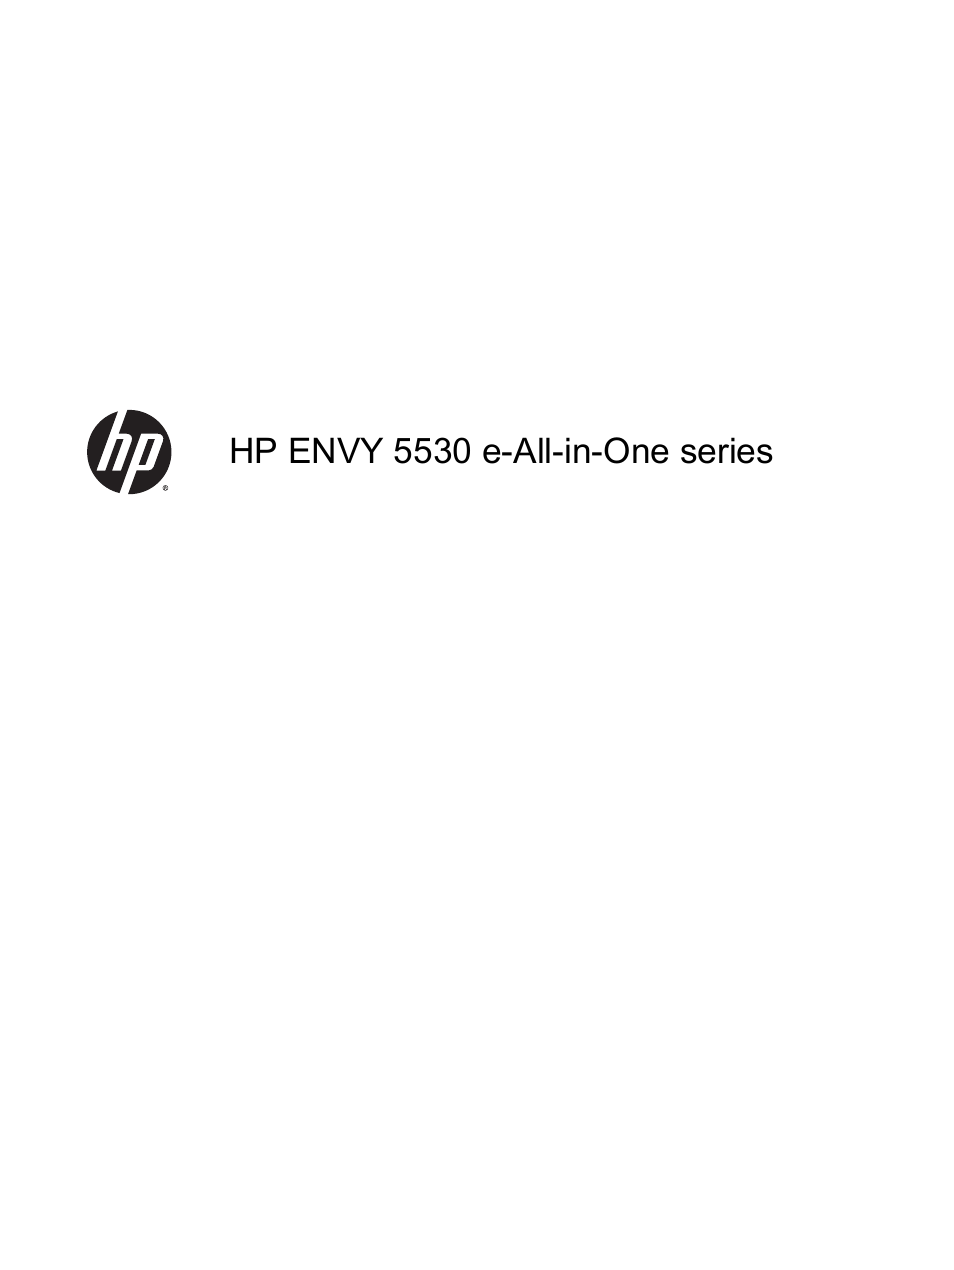 Hp Envy 5530 E All In One Printer User Manual 108 Pages